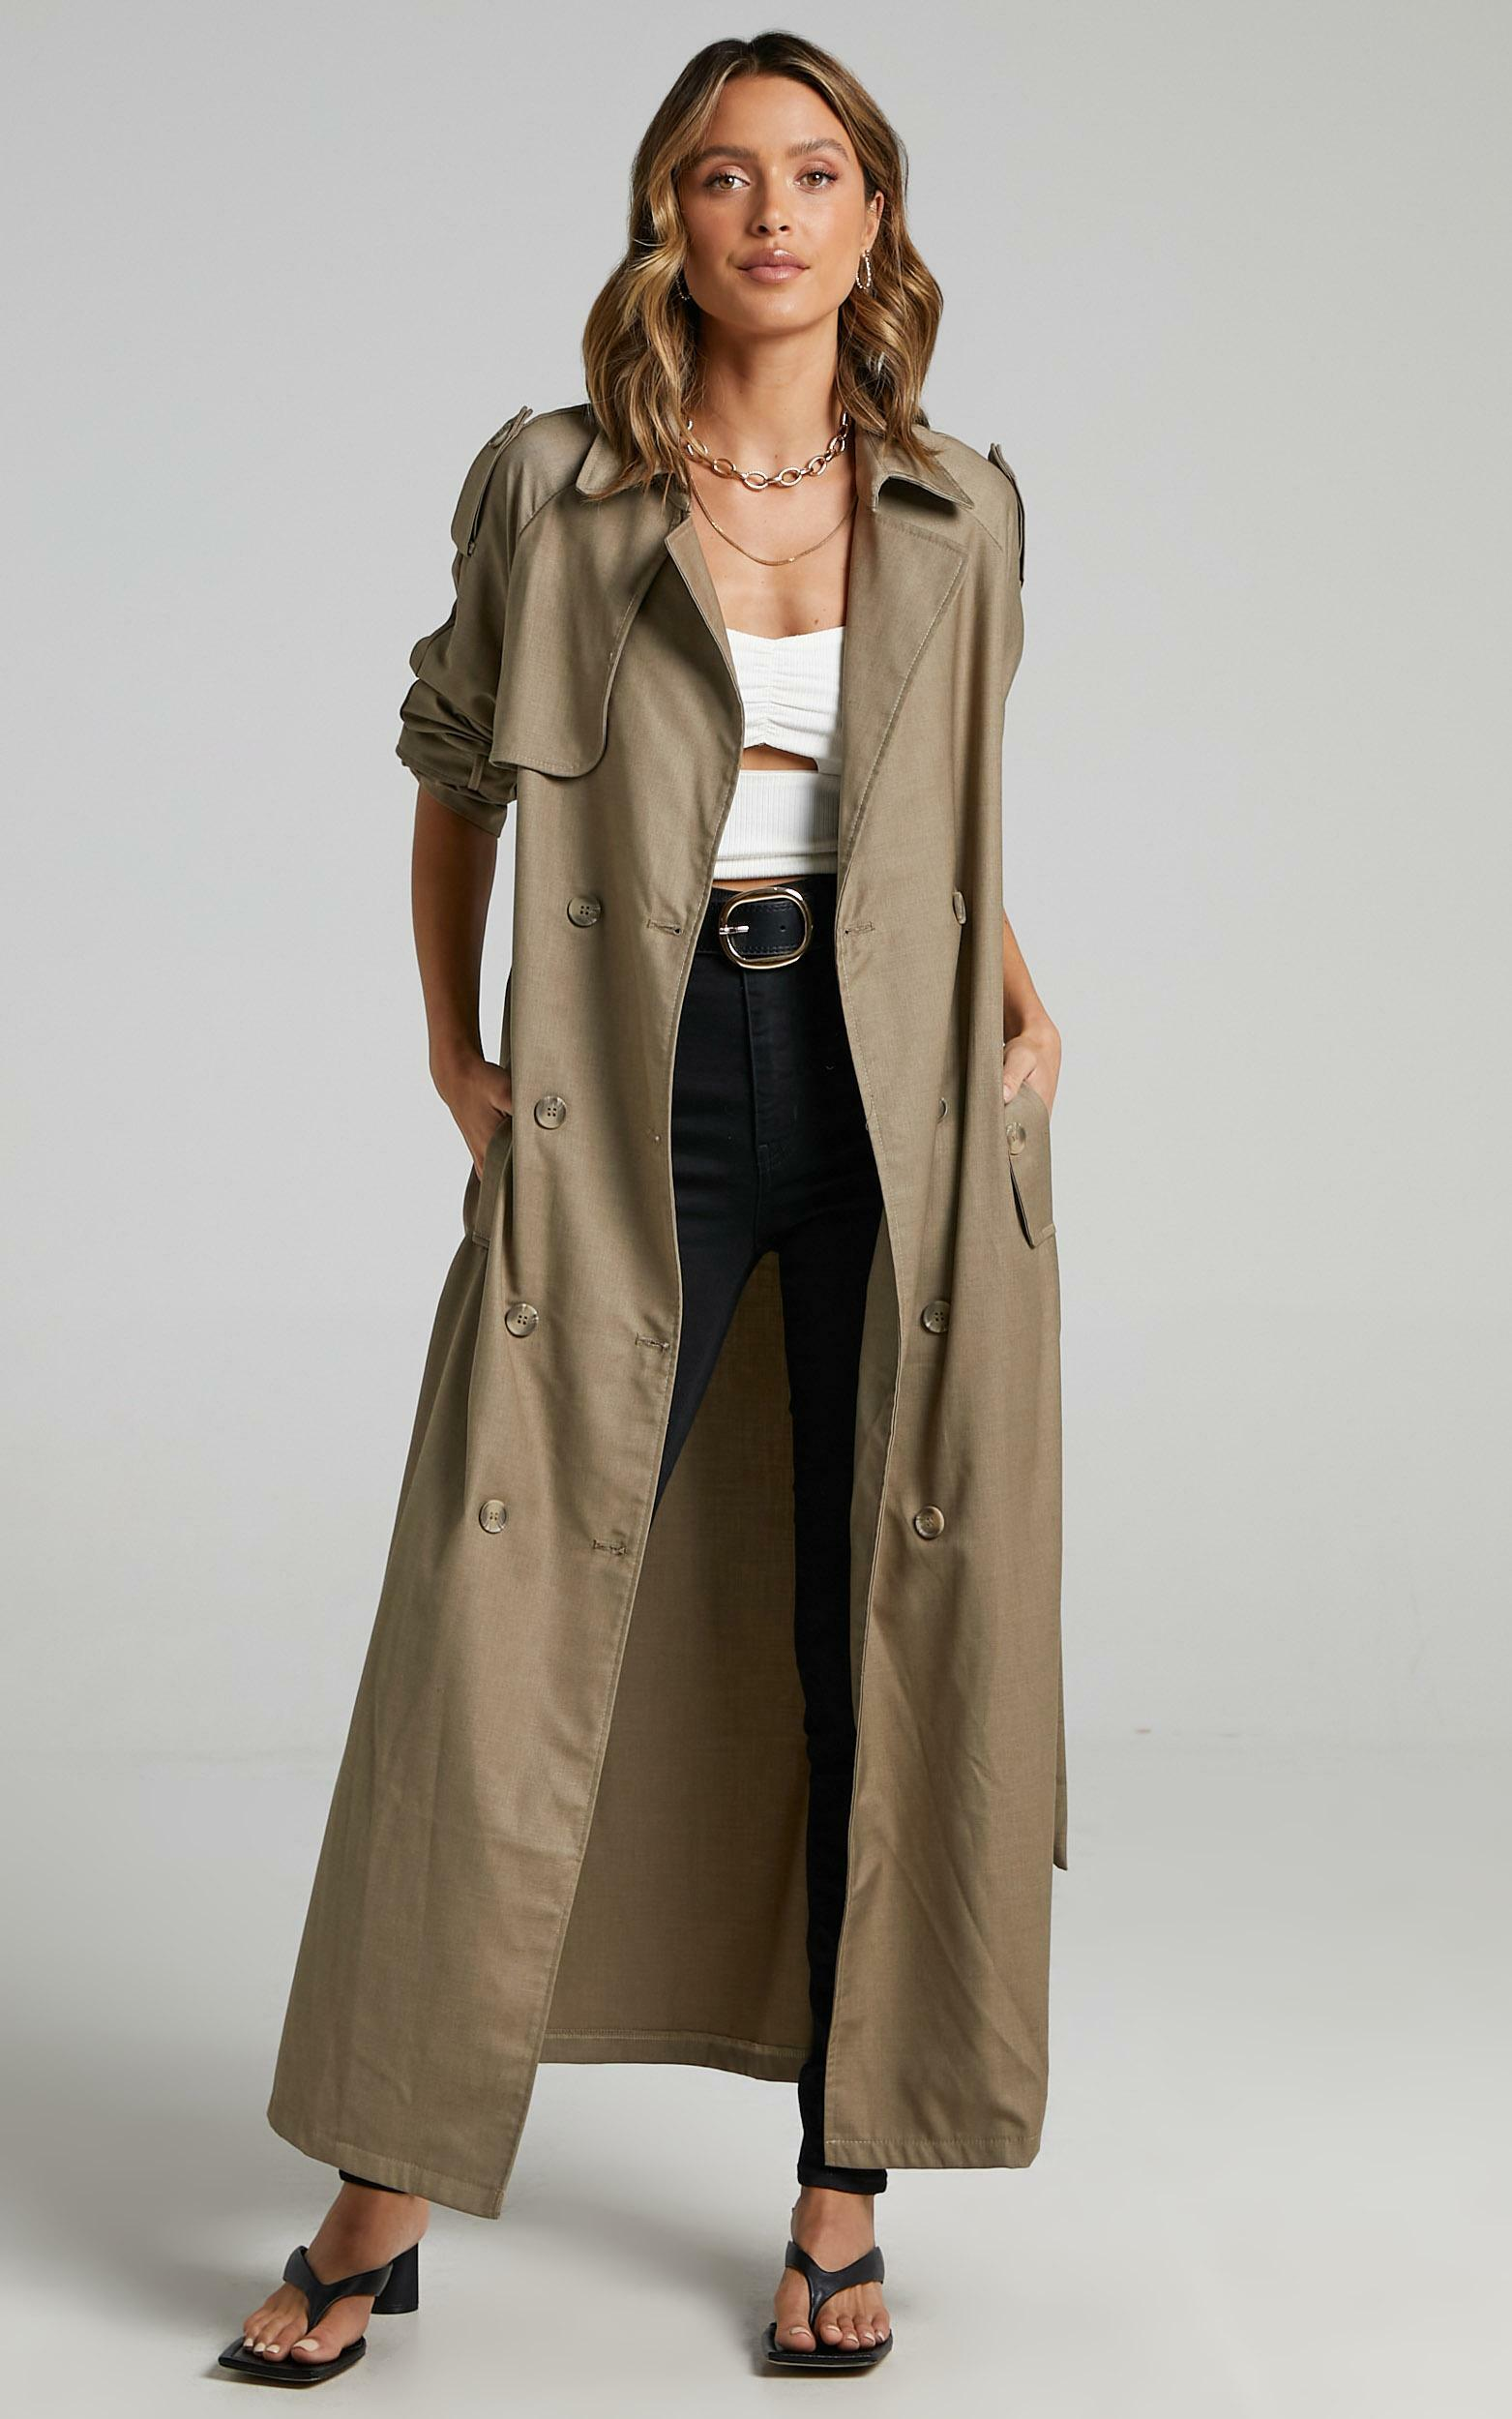 Lioness - Treacherous Long Coat in Beige - 12 (L), Beige, hi-res image number null